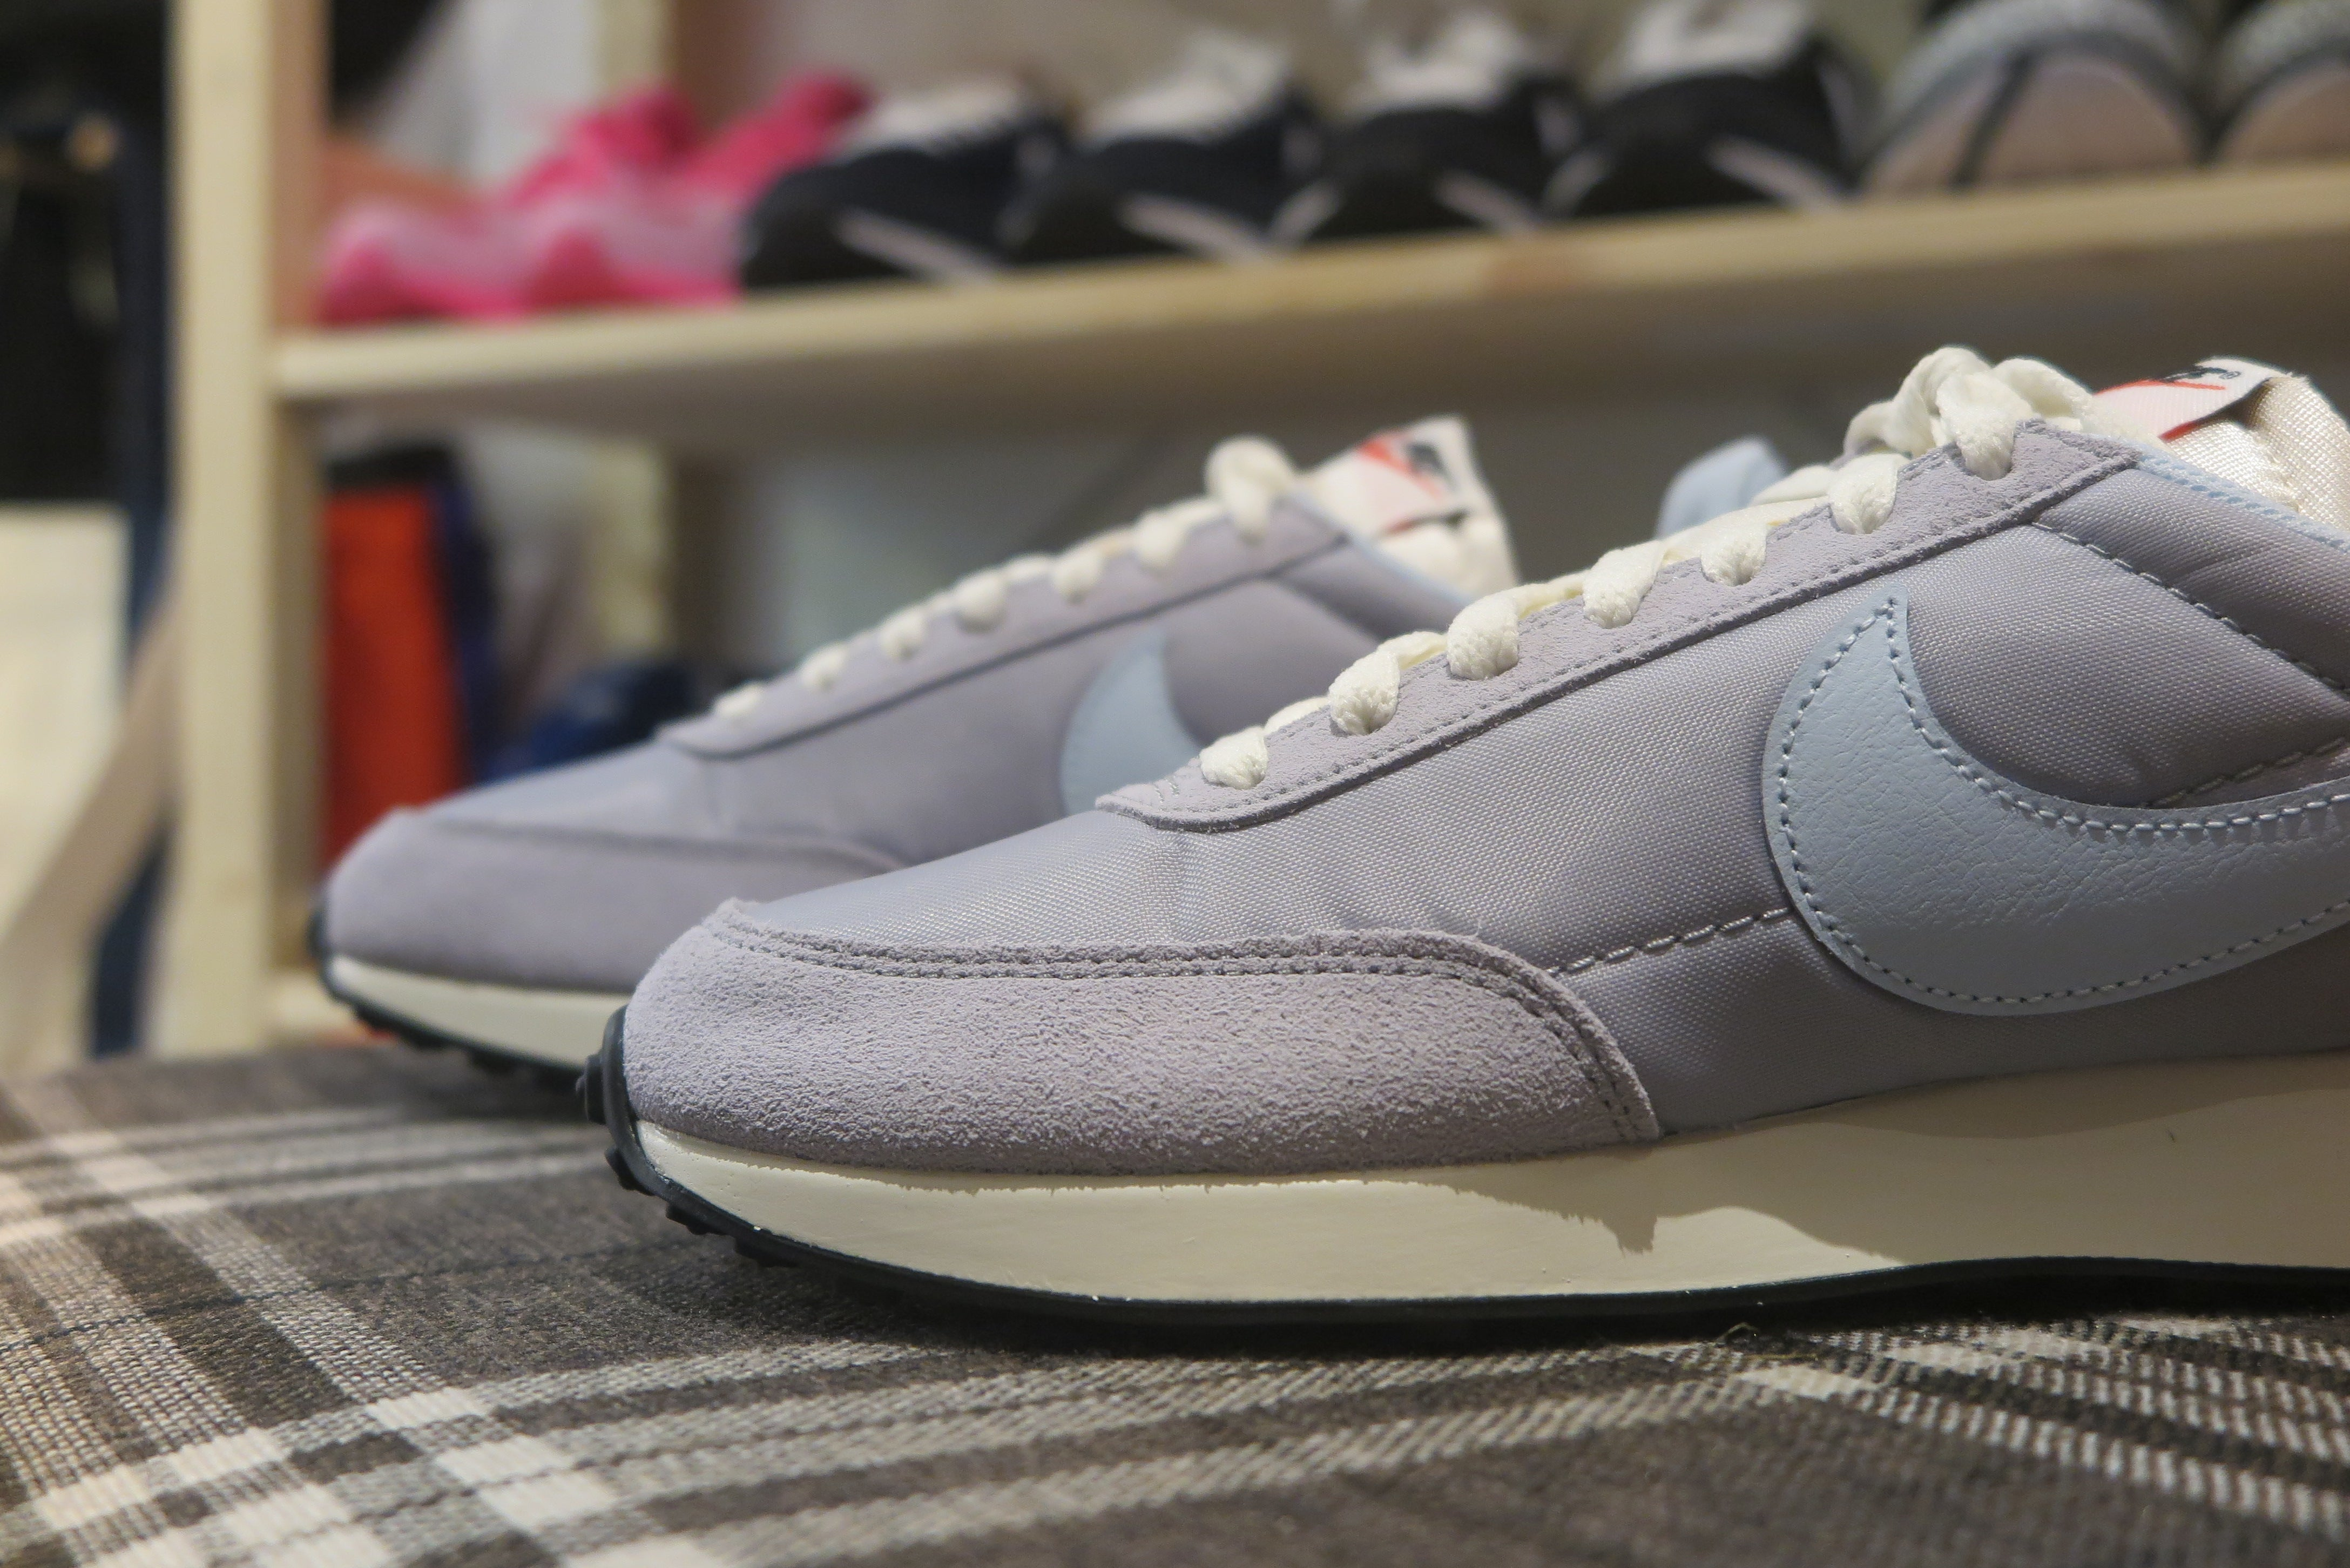 Nike Air Tailwind 79 - Wolf Grey/Antarctica/Sail/Black #487754-010-Preorder Item-Navy Selected Shop